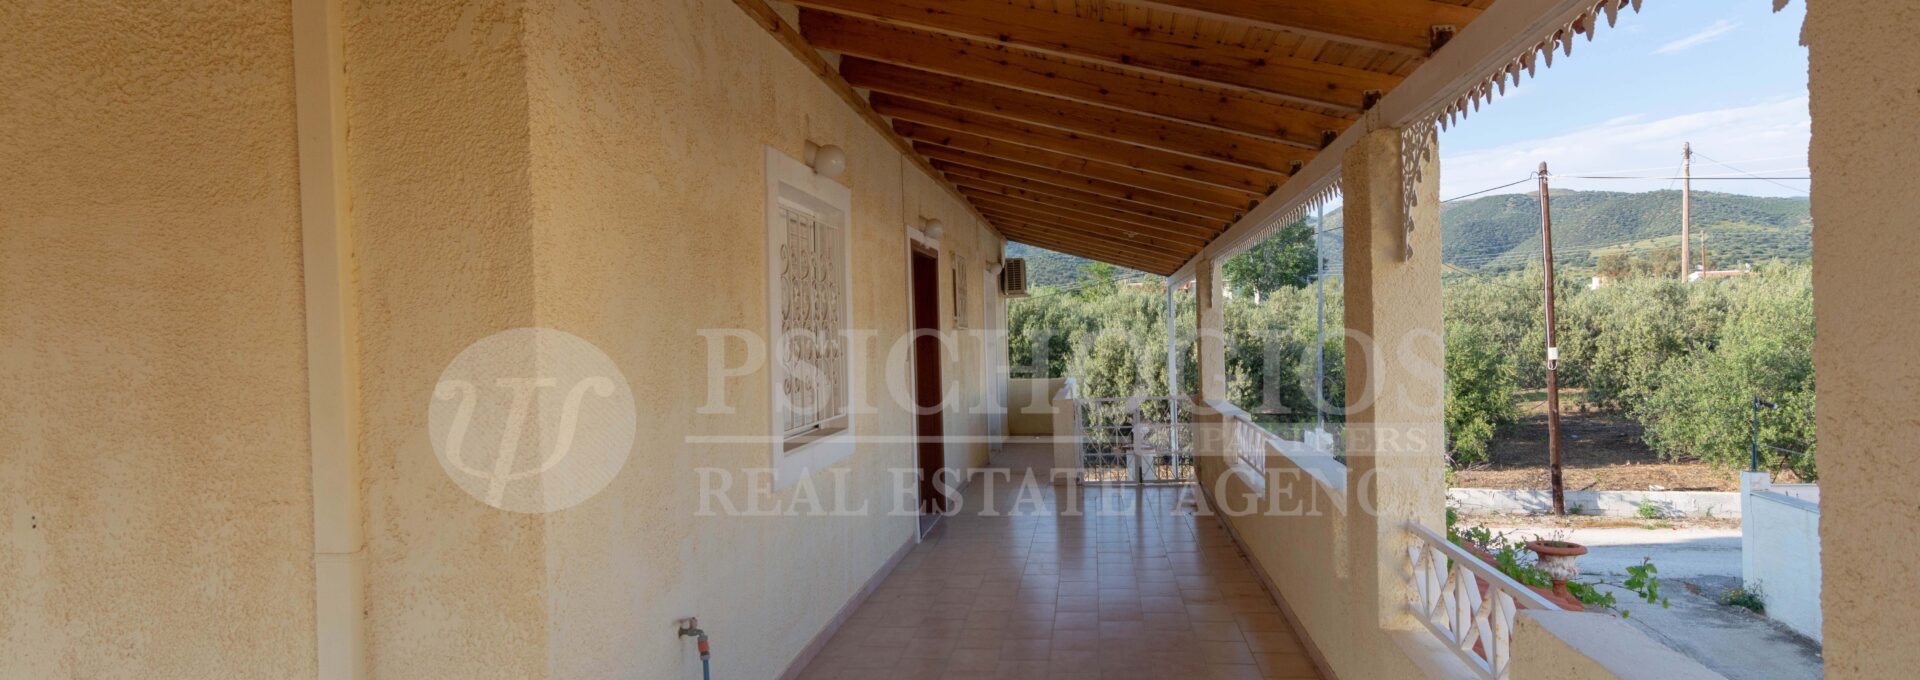 for_sale_house_380_square_meters_sea_view_ermioni_greece (22)